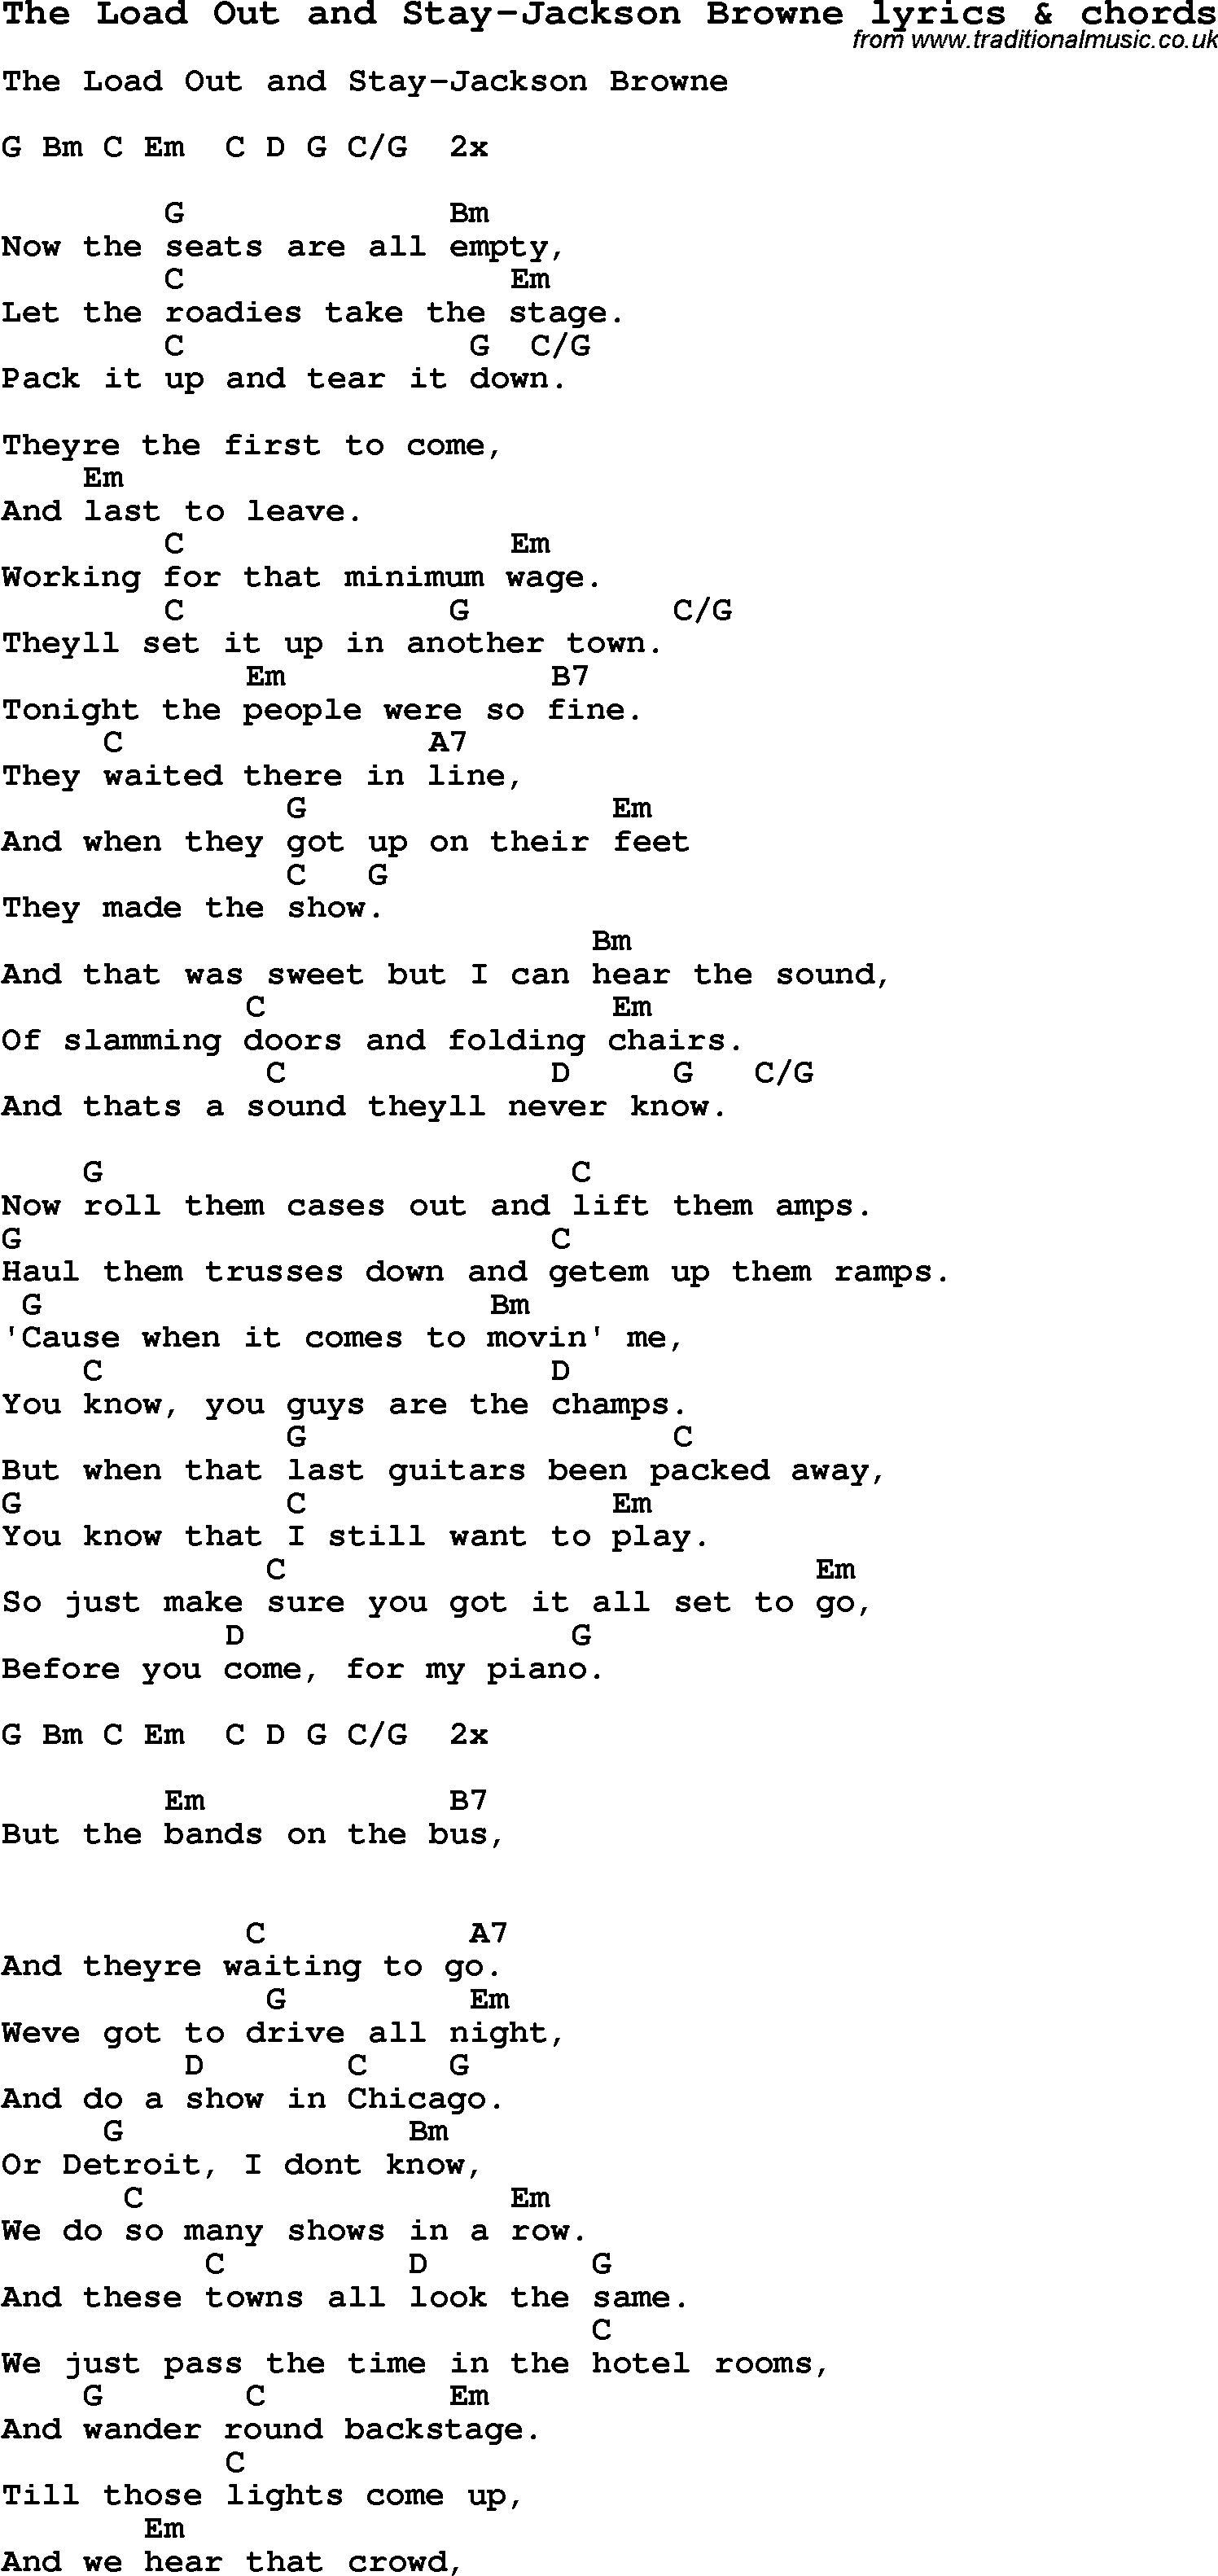 Love song lyrics forthe load out and stay jackson browne with chords love song lyrics for the load out and stay jackson browne with chords for hexwebz Choice Image